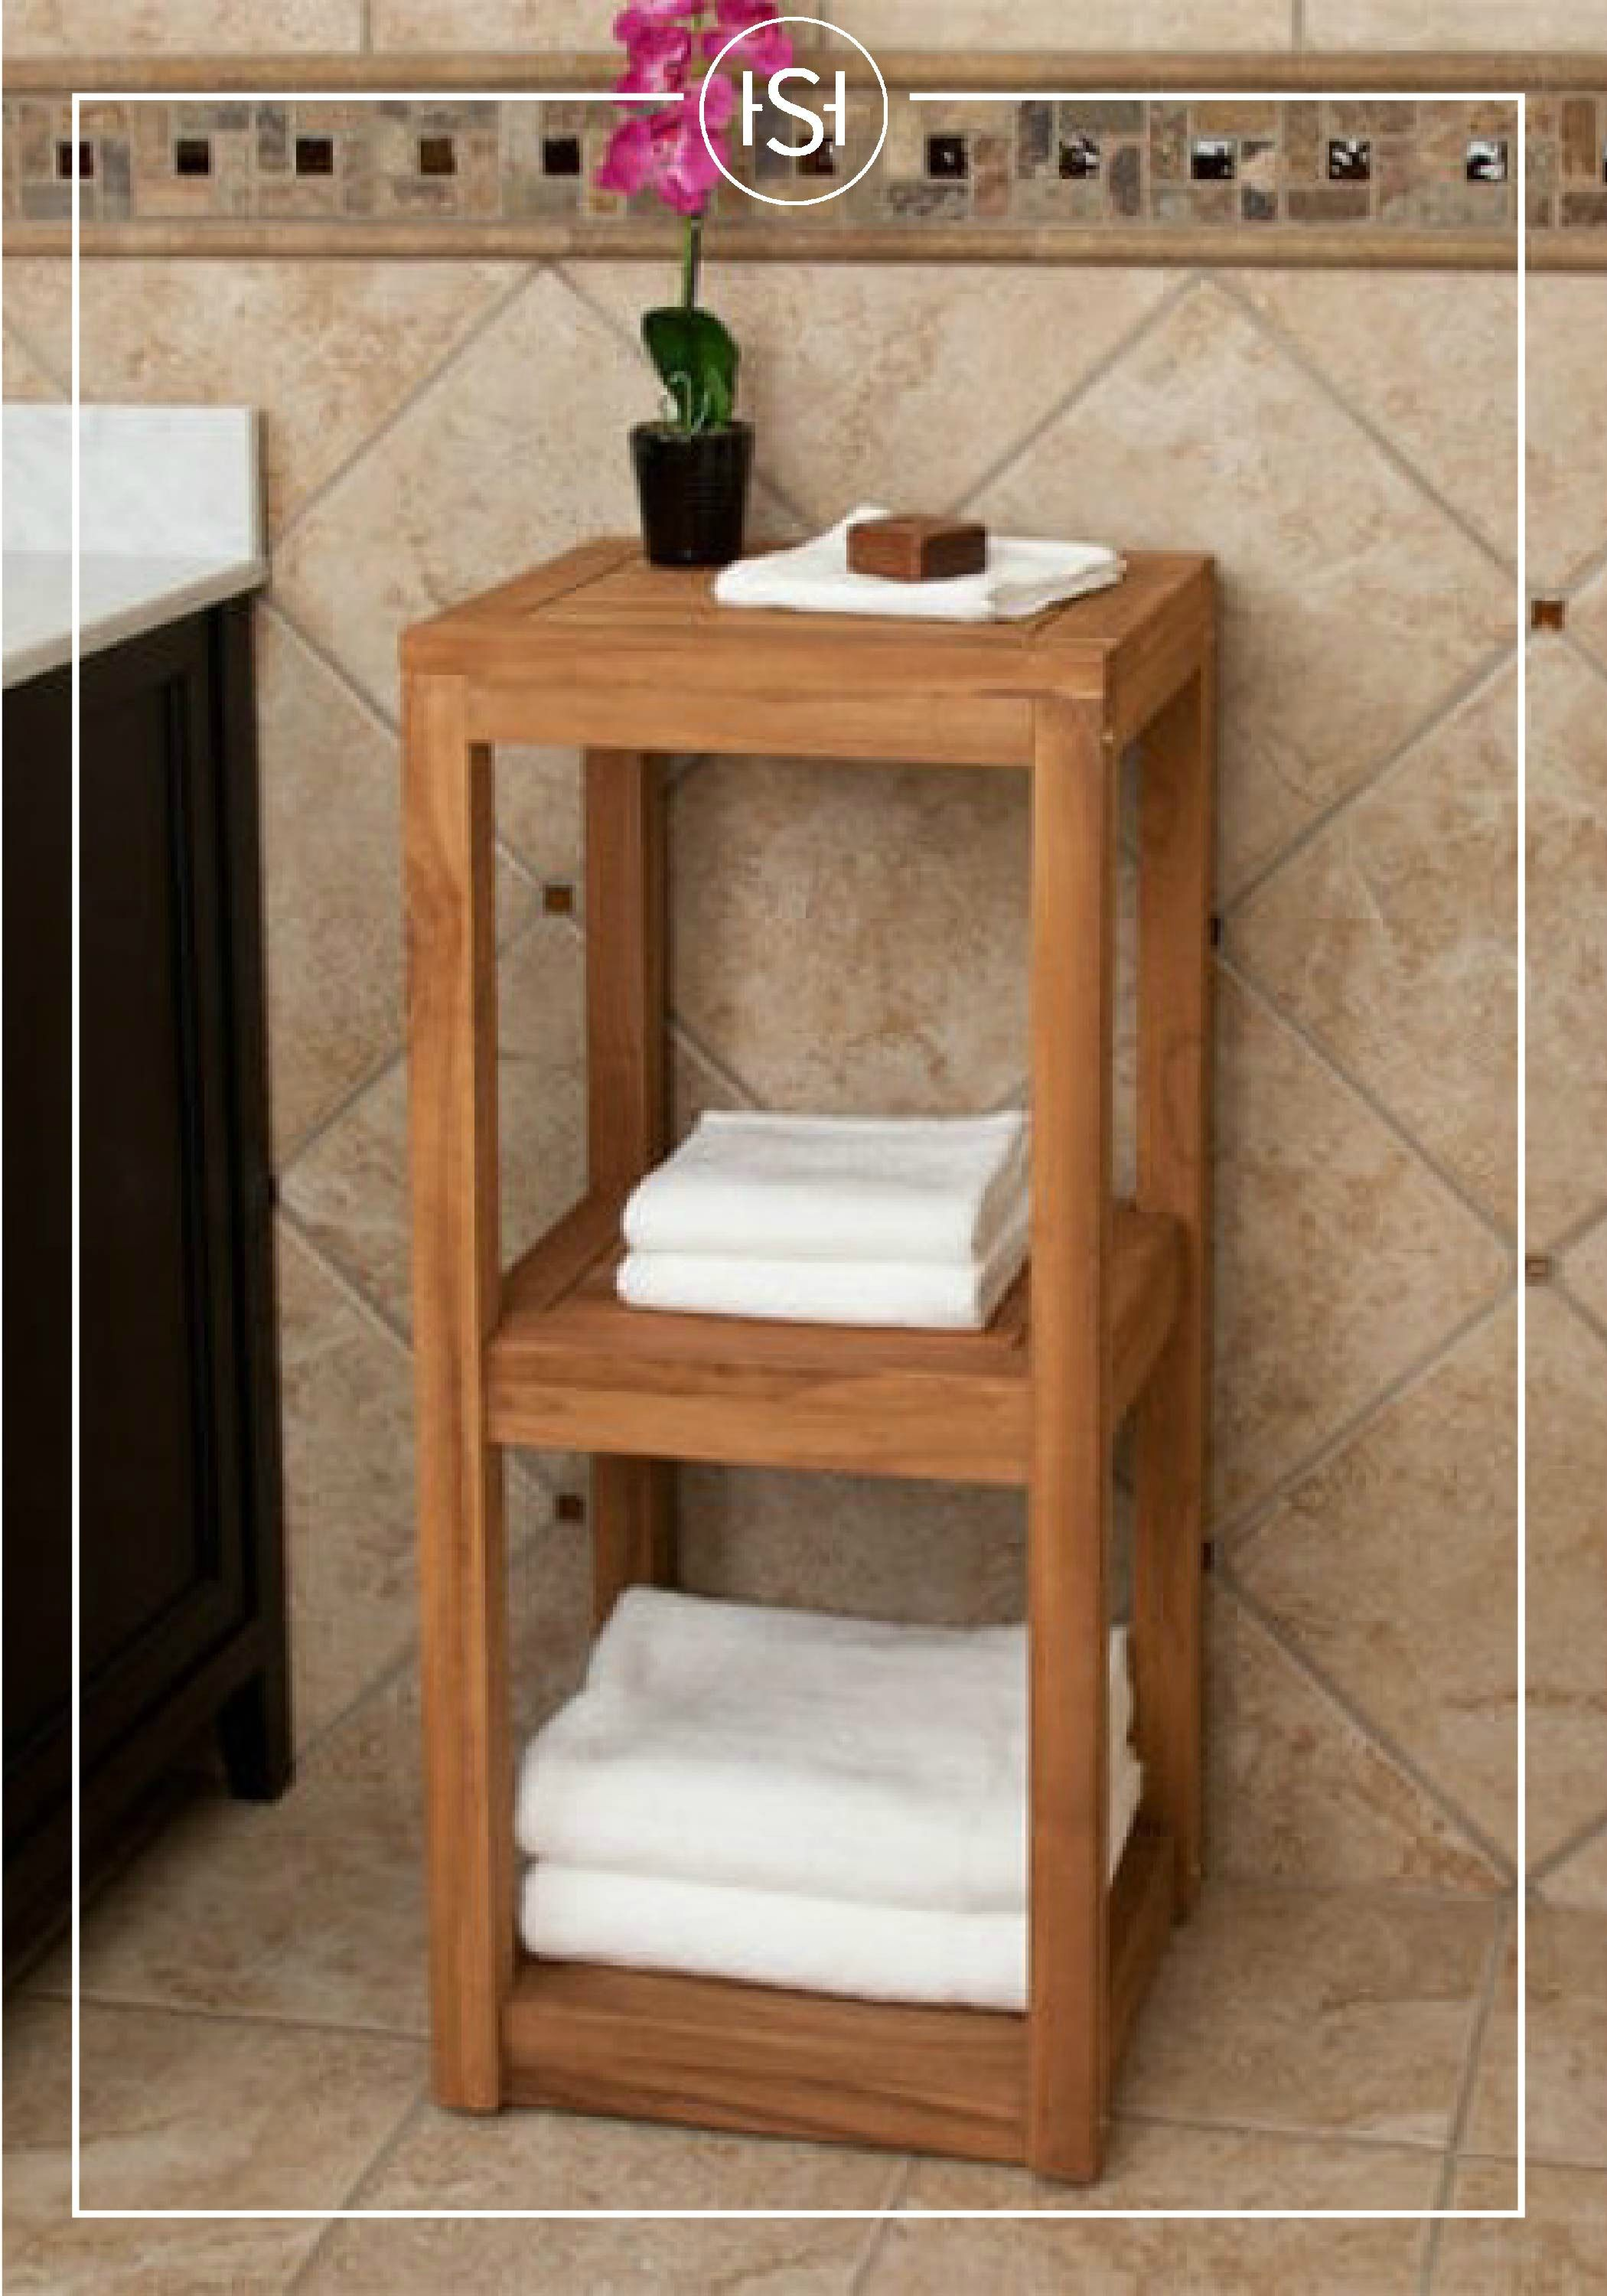 wallowaoregon bathroom towel com option creative shelves storage